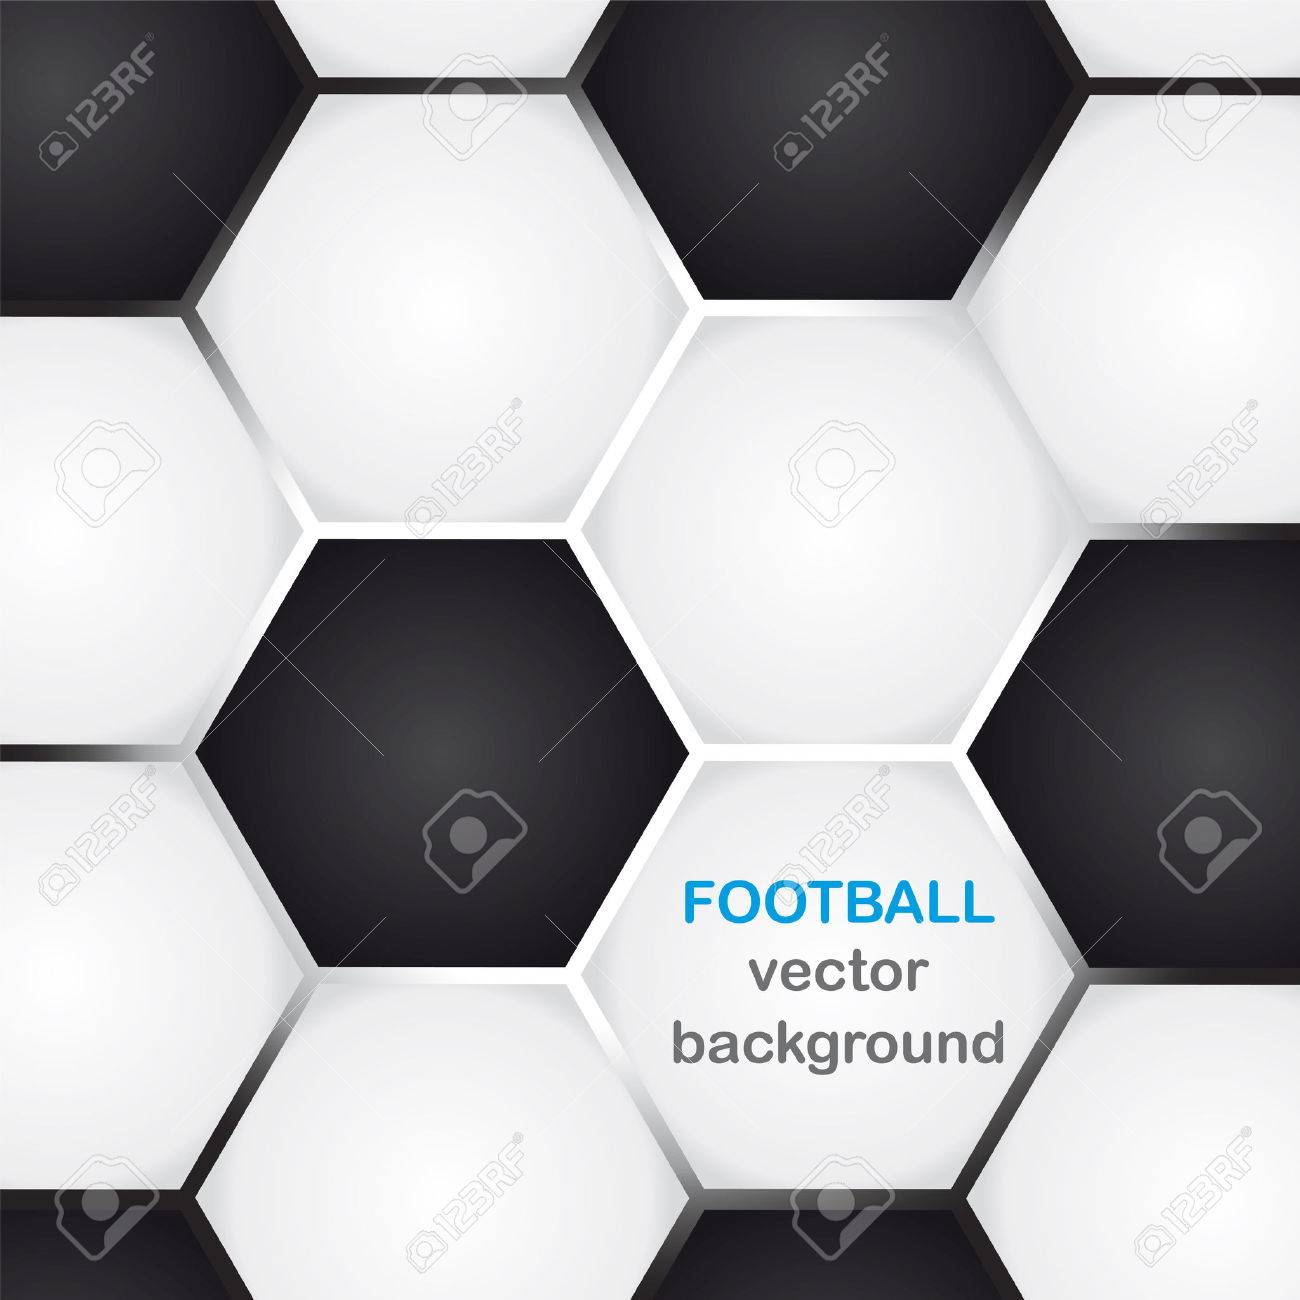 background with classic football texture and copy-space - 50145190